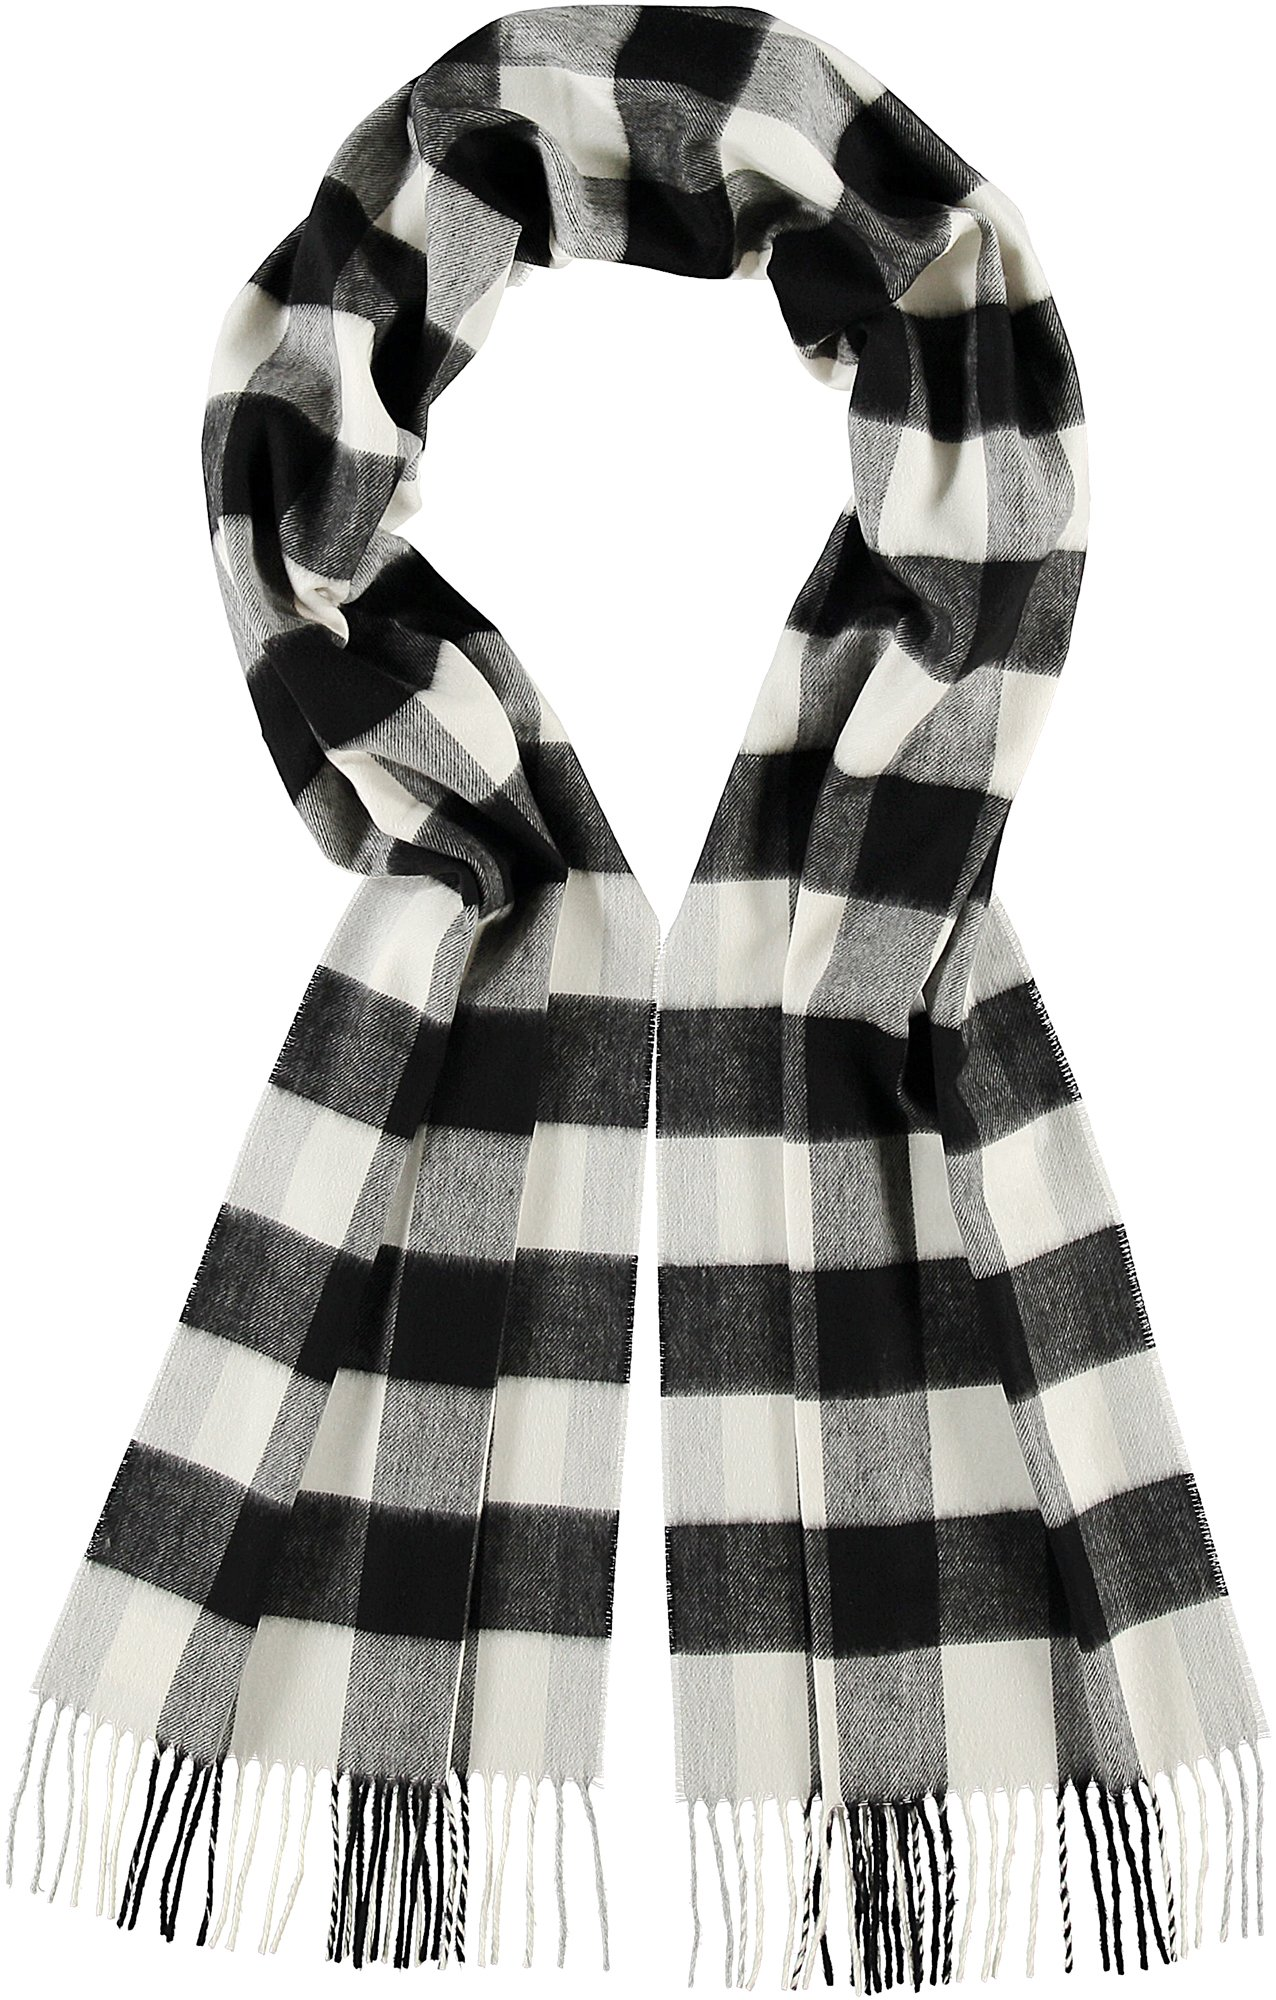 Buffalo Check in Black&White- $35.00  Cashmink, Made in Germany 771899116095